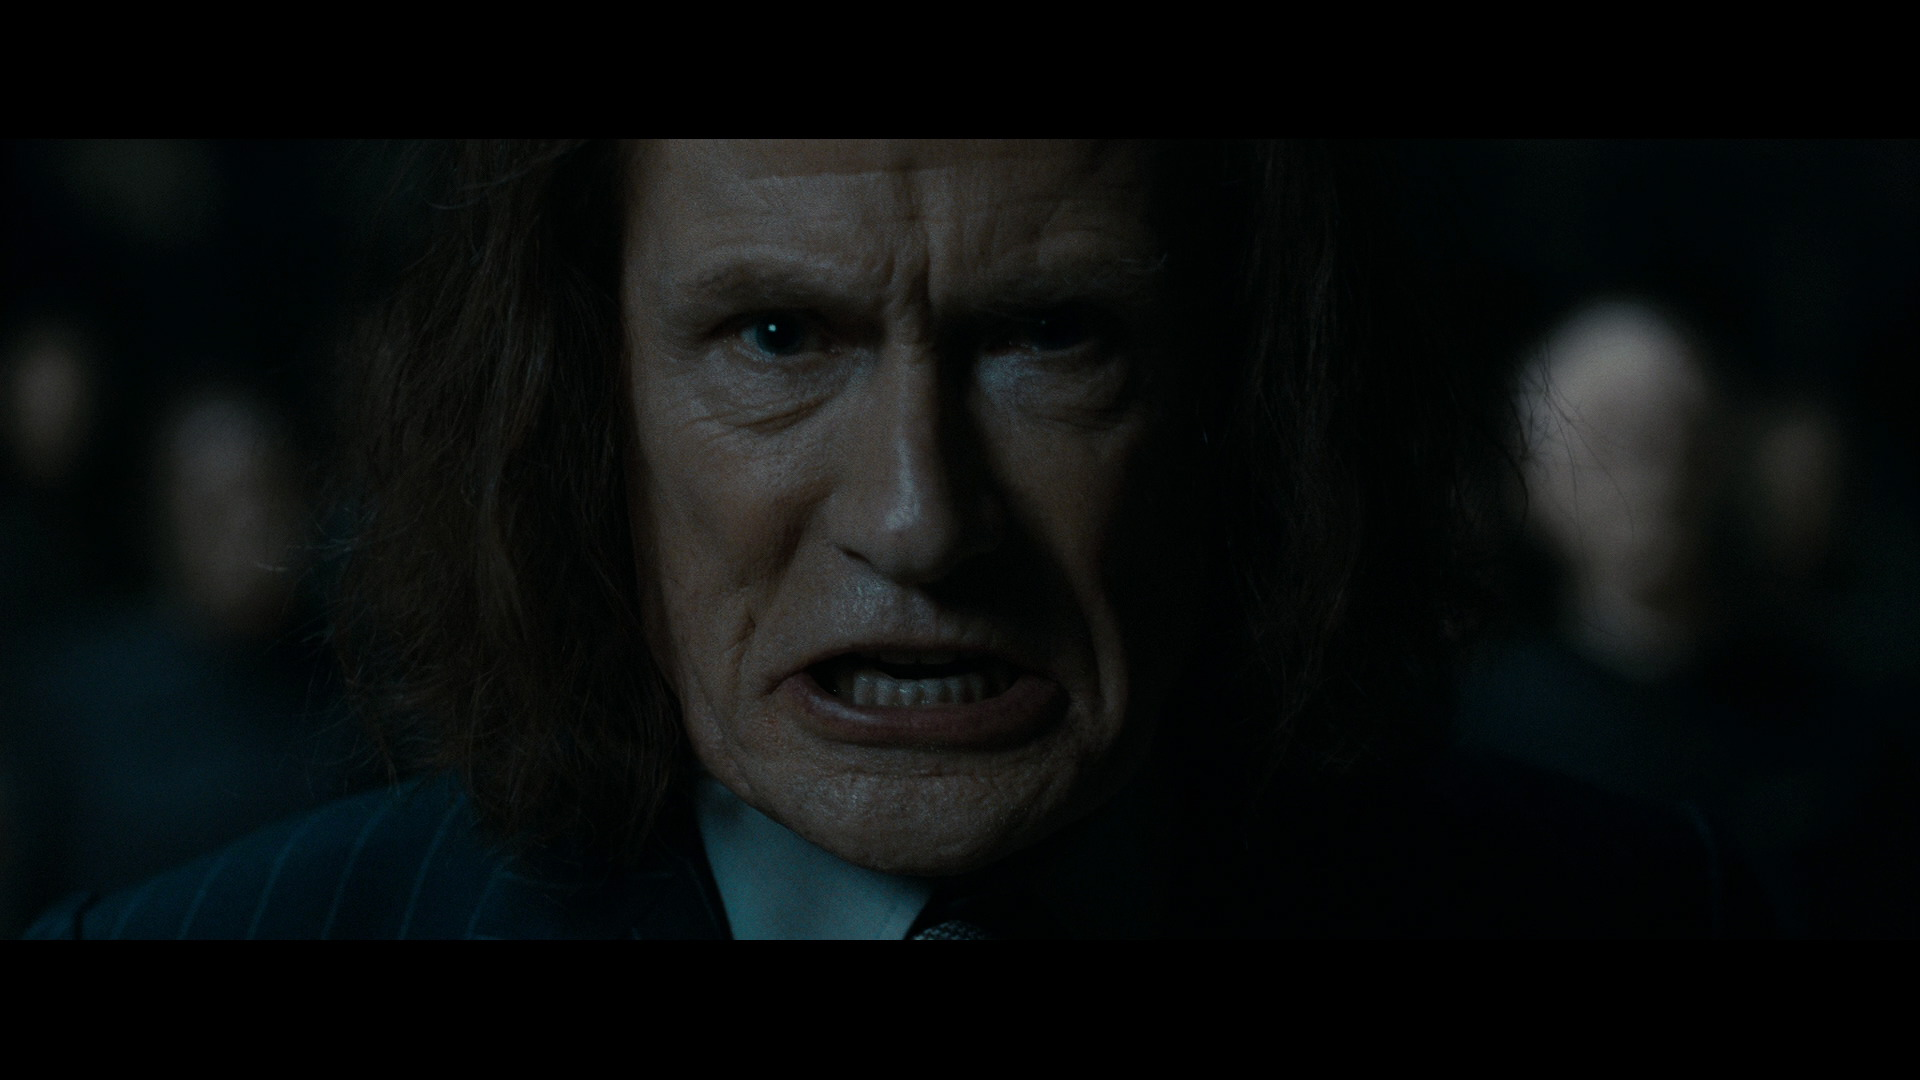 PORTABLE Harry Potter And The Deathly Hallows - Part 2 In Hindi Dubbed Movie Download harry-potter-deathly-hallows1-movie-screencaps.com-15